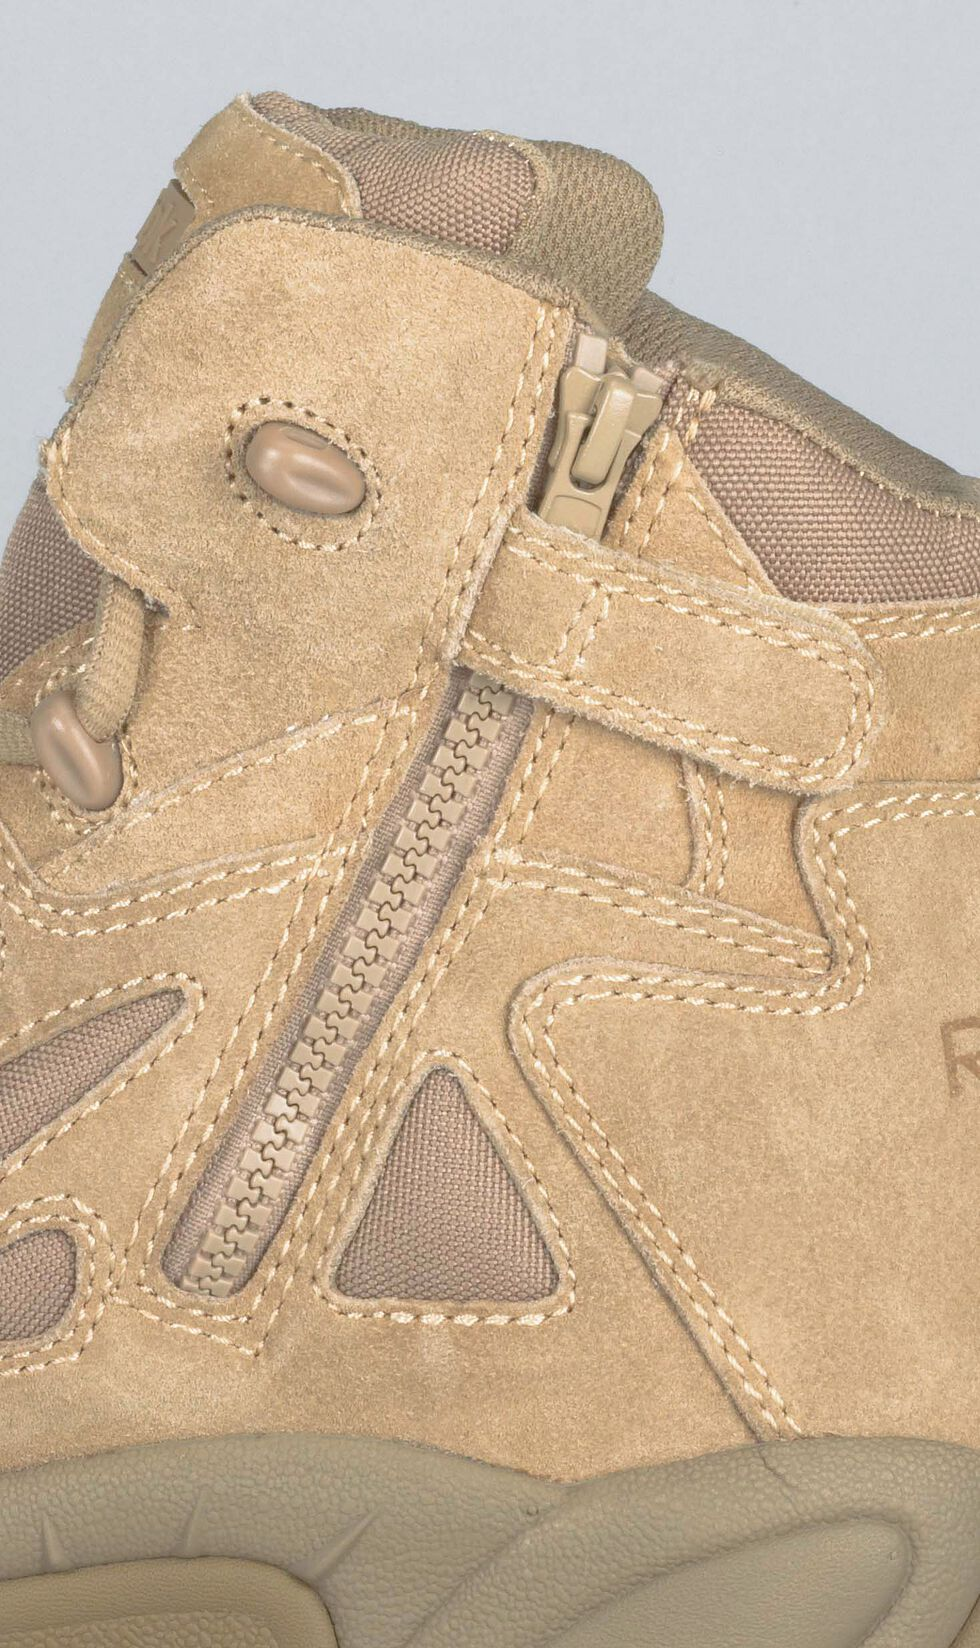 """Reebok Men's Stealth 6"""" Lace-Up with Side-Zip Tactical Work Boots - Composite Toe, Desert Khaki, hi-res"""